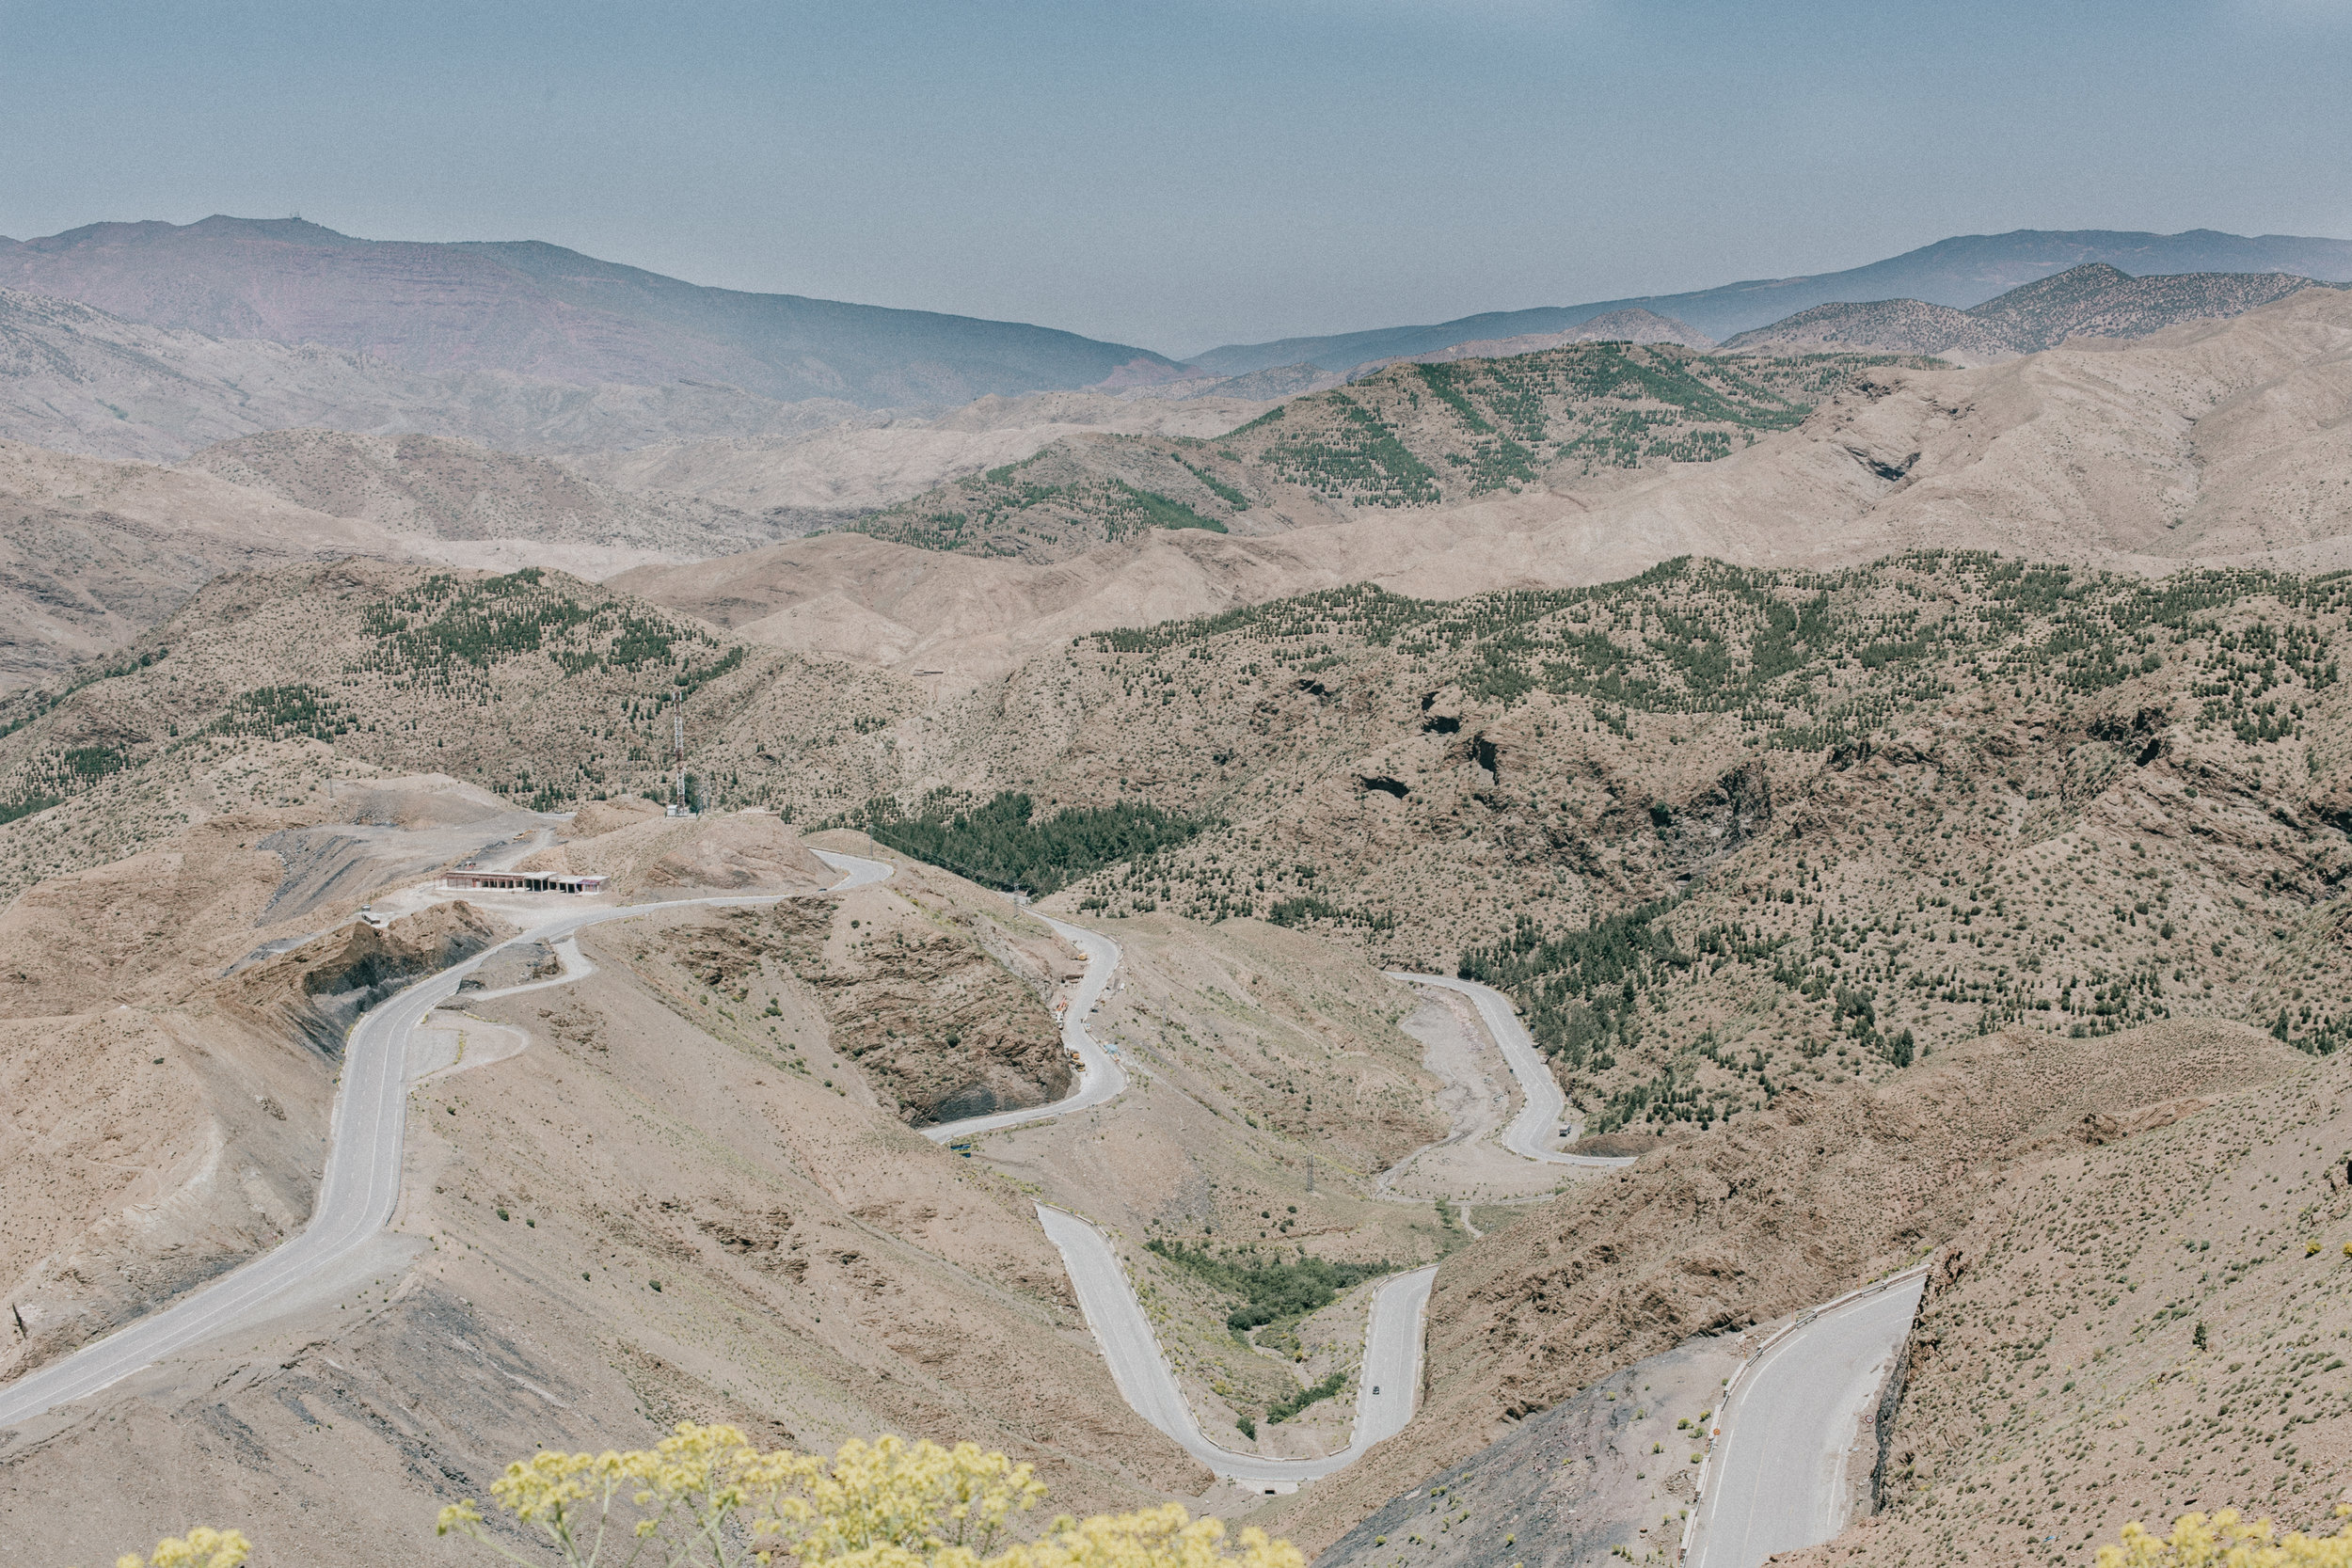 Journeying through the Atlas Mountains and into the Desert via beautiful winding roads.